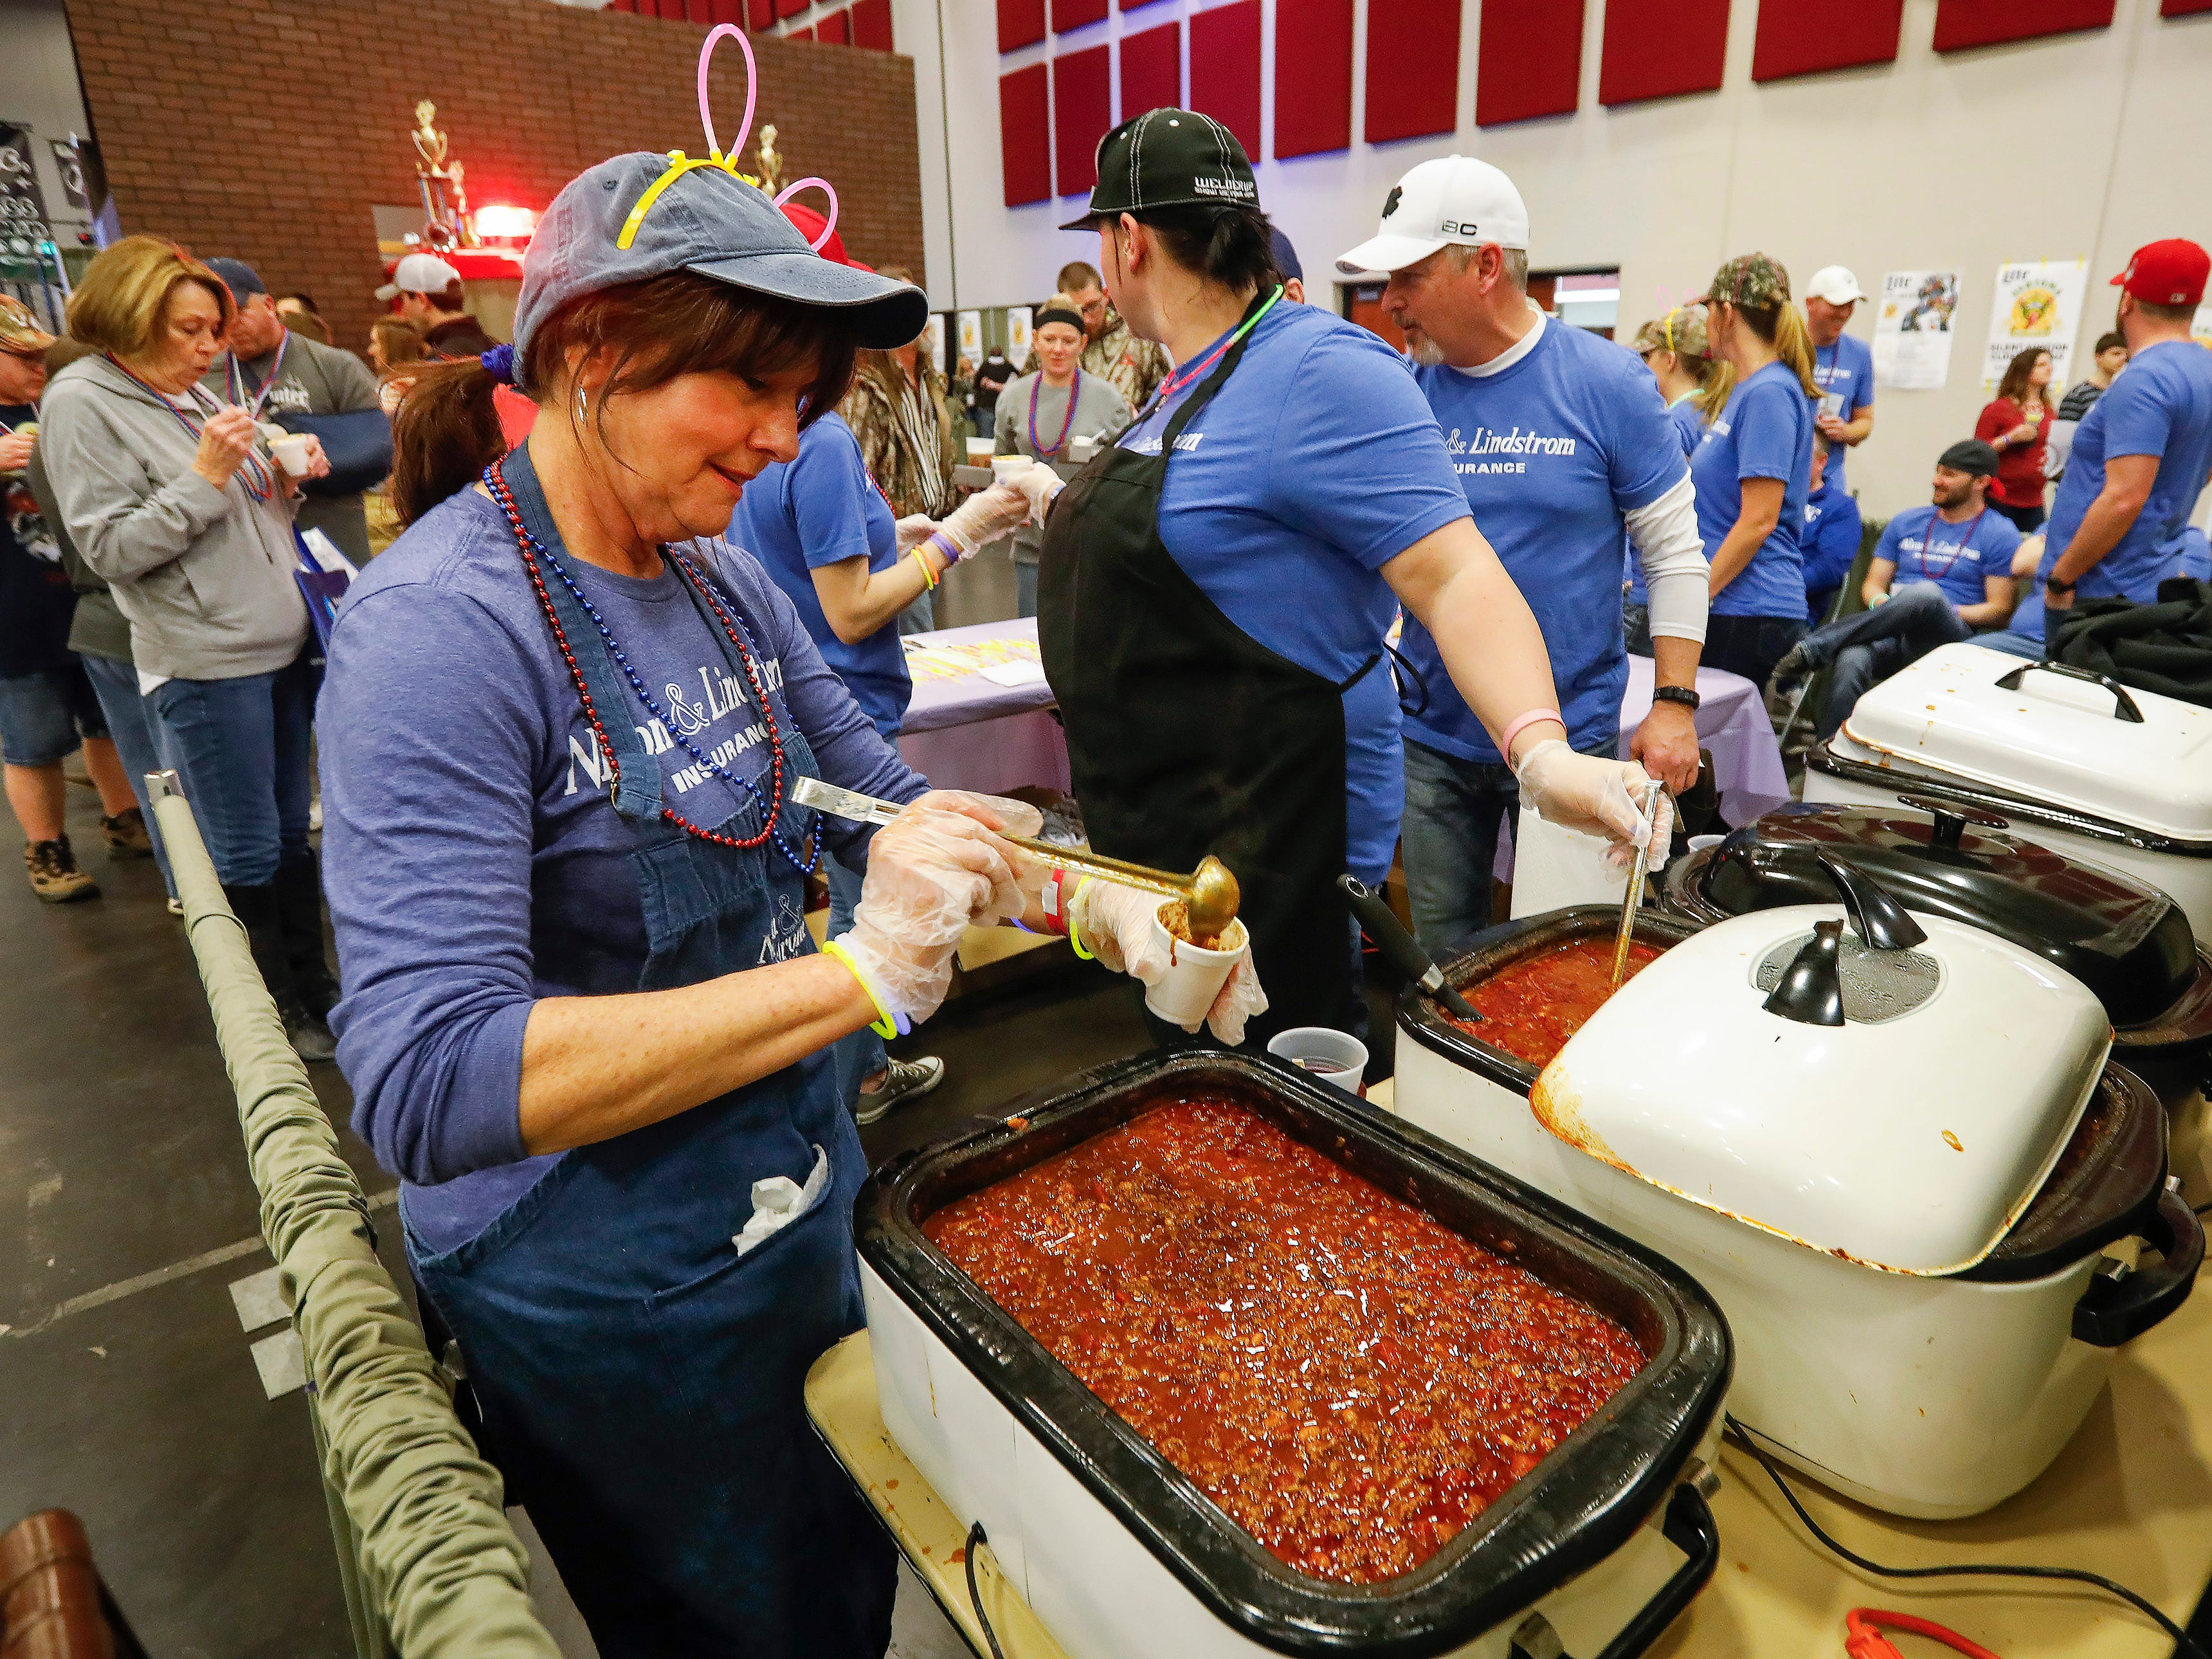 Sue Hawkins dishes out a sample of chili during the 2019 Sertoma Chili Cook-Off at the Springfield Expo Center on Saturday, Feb. 23, 2019.